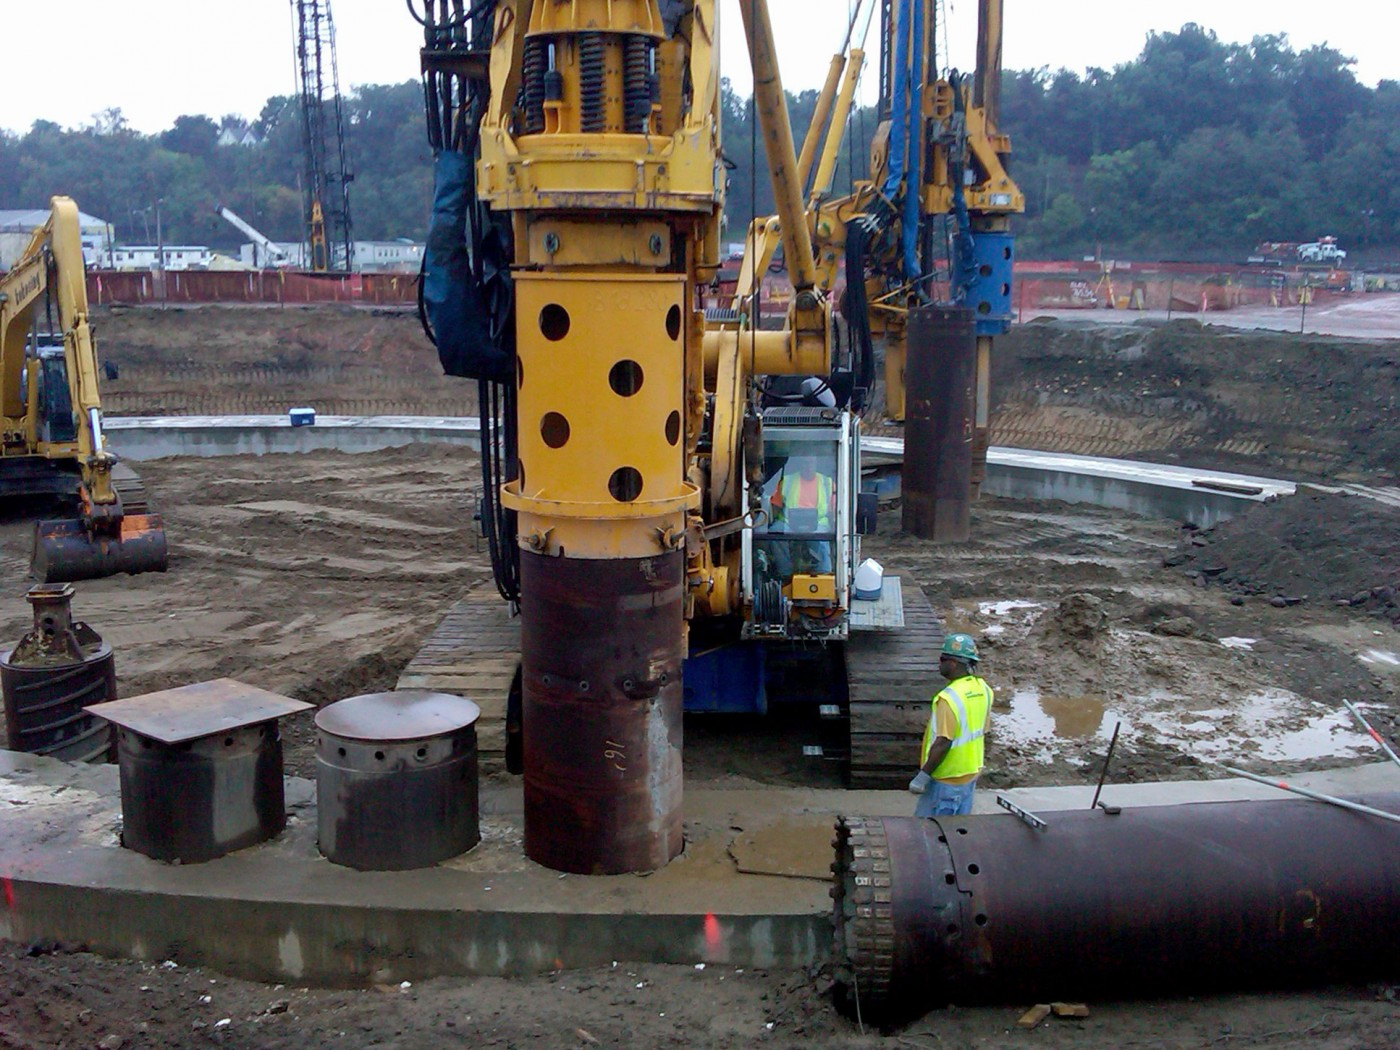 ATI Hot-Rolling and Processing Facility secant piles